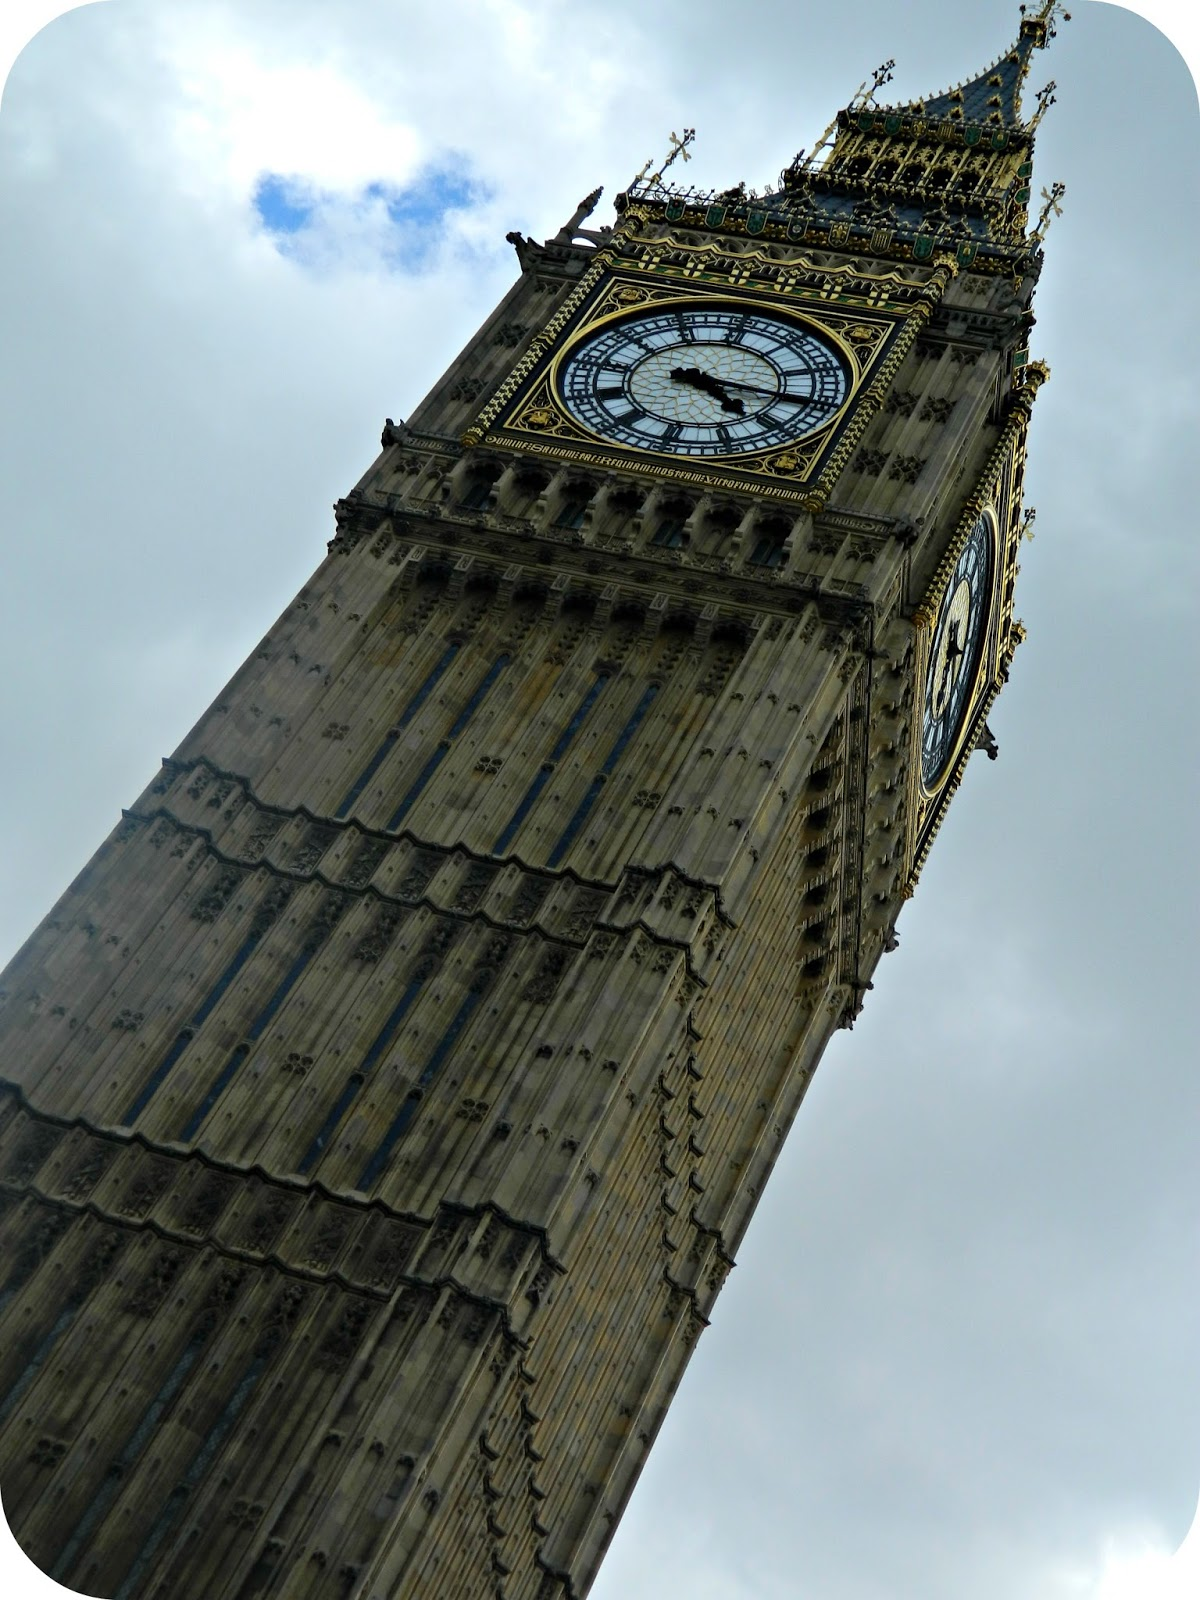 The Elizabeth Tower Big Ben London